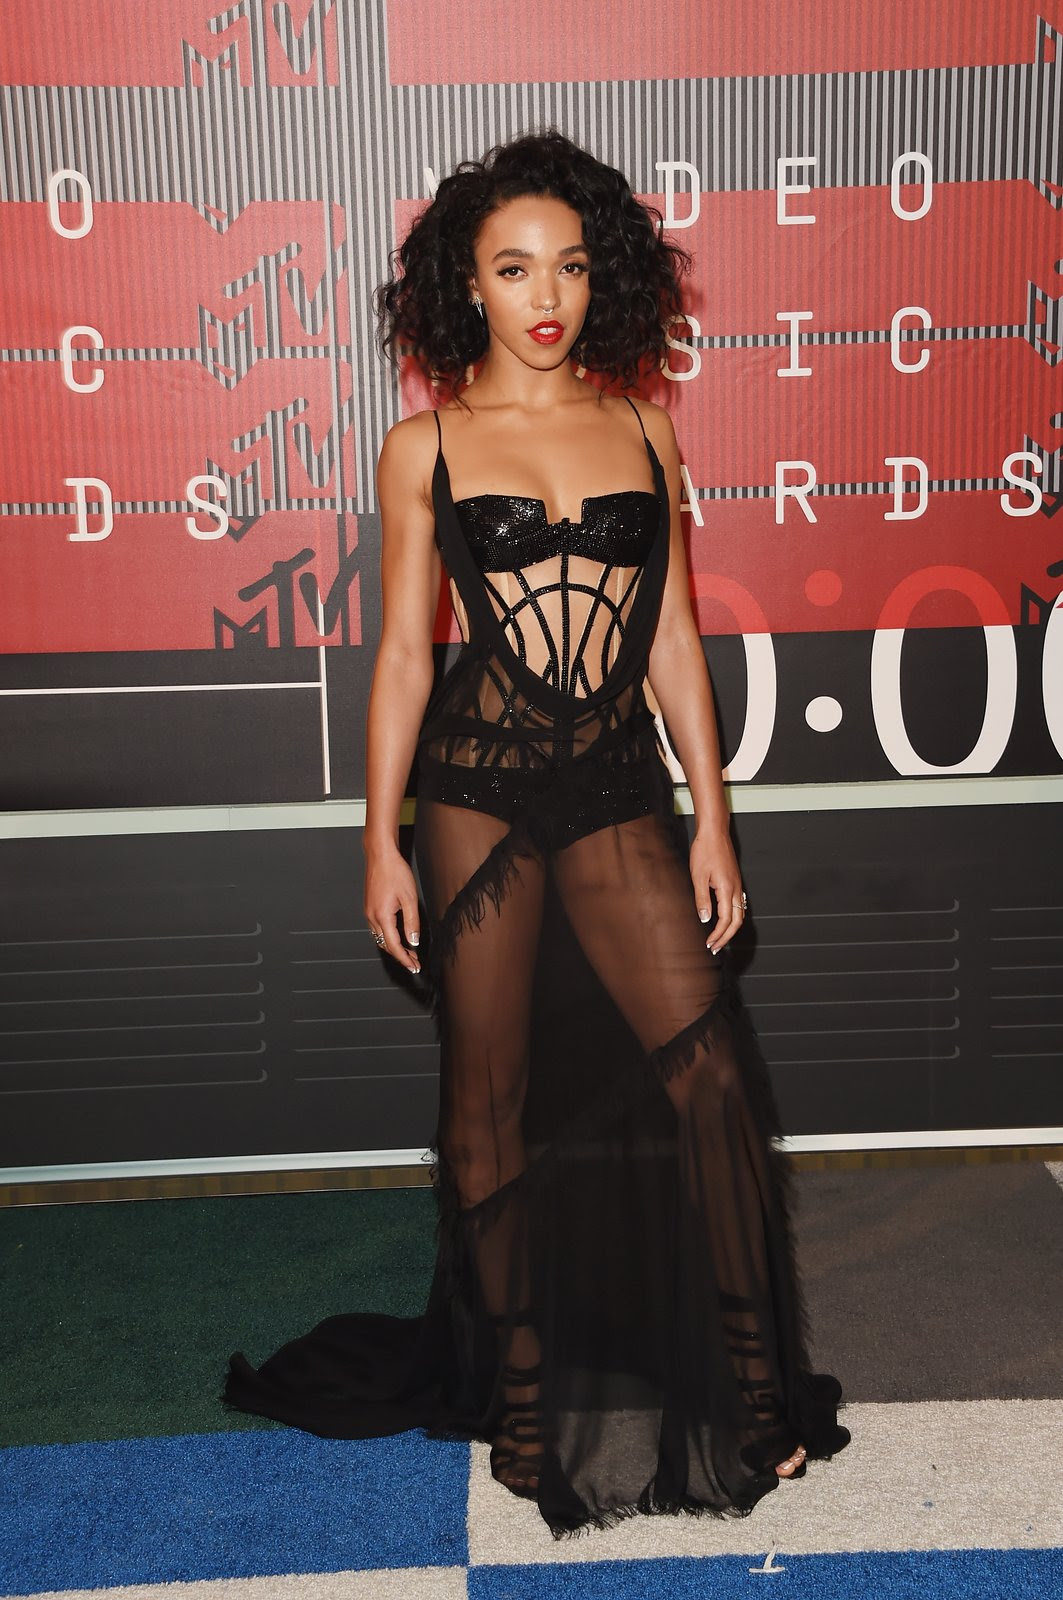 http://media.vogue.com/r/h_1600,w_1240/2015/08/30/fka-twigs-vma-20151.jpg